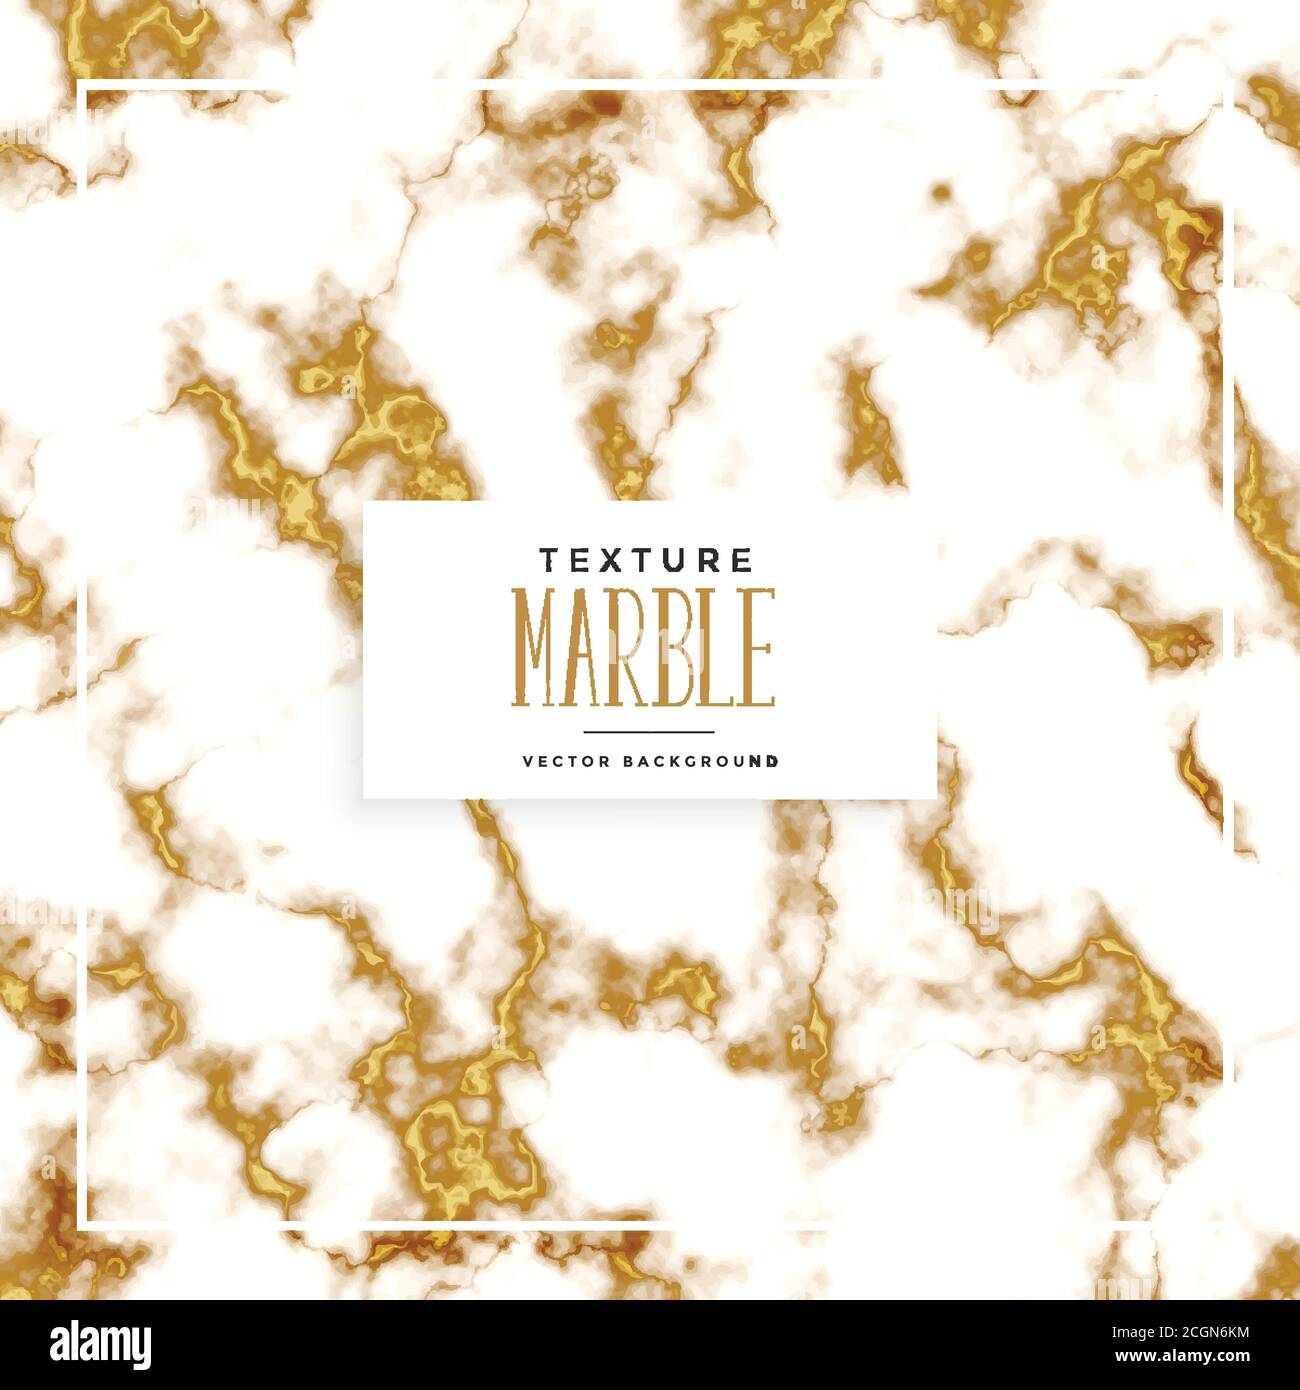 Gold Marble Texture Background High Resolution Stock Photography And Images Alamy